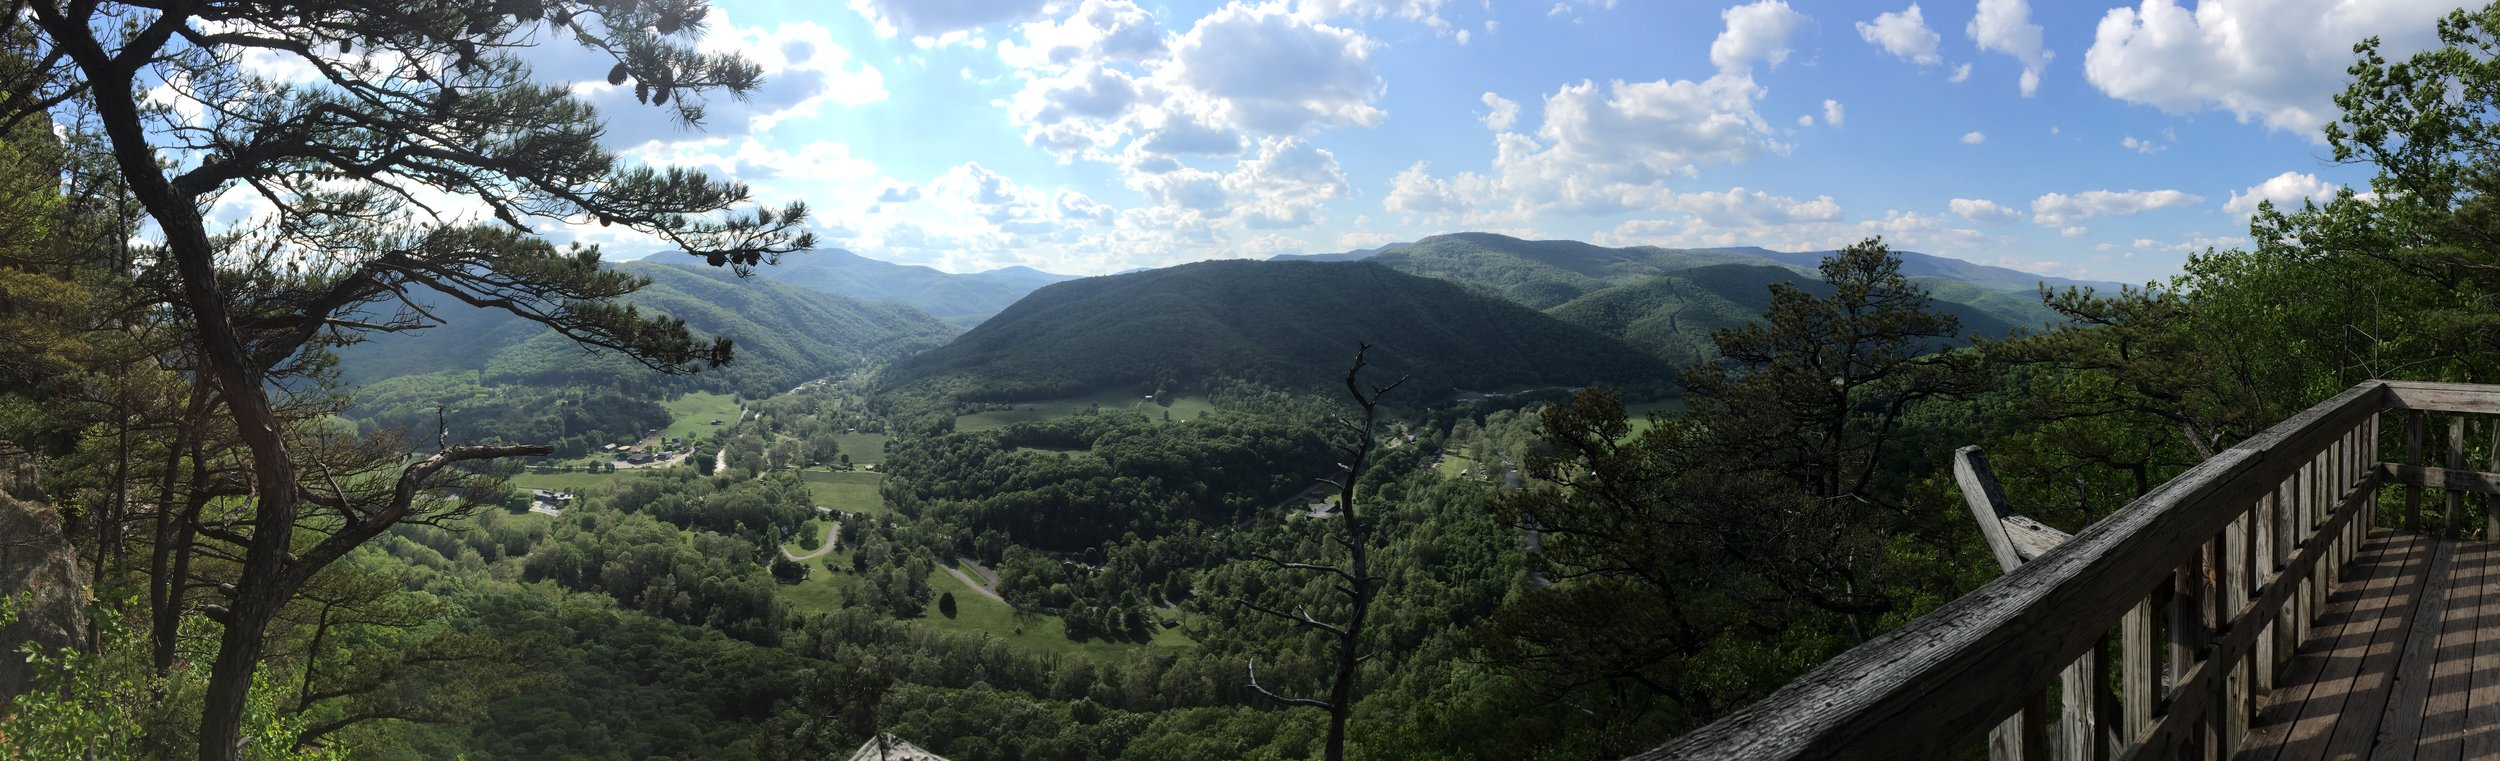 The view from Seneca Rocks